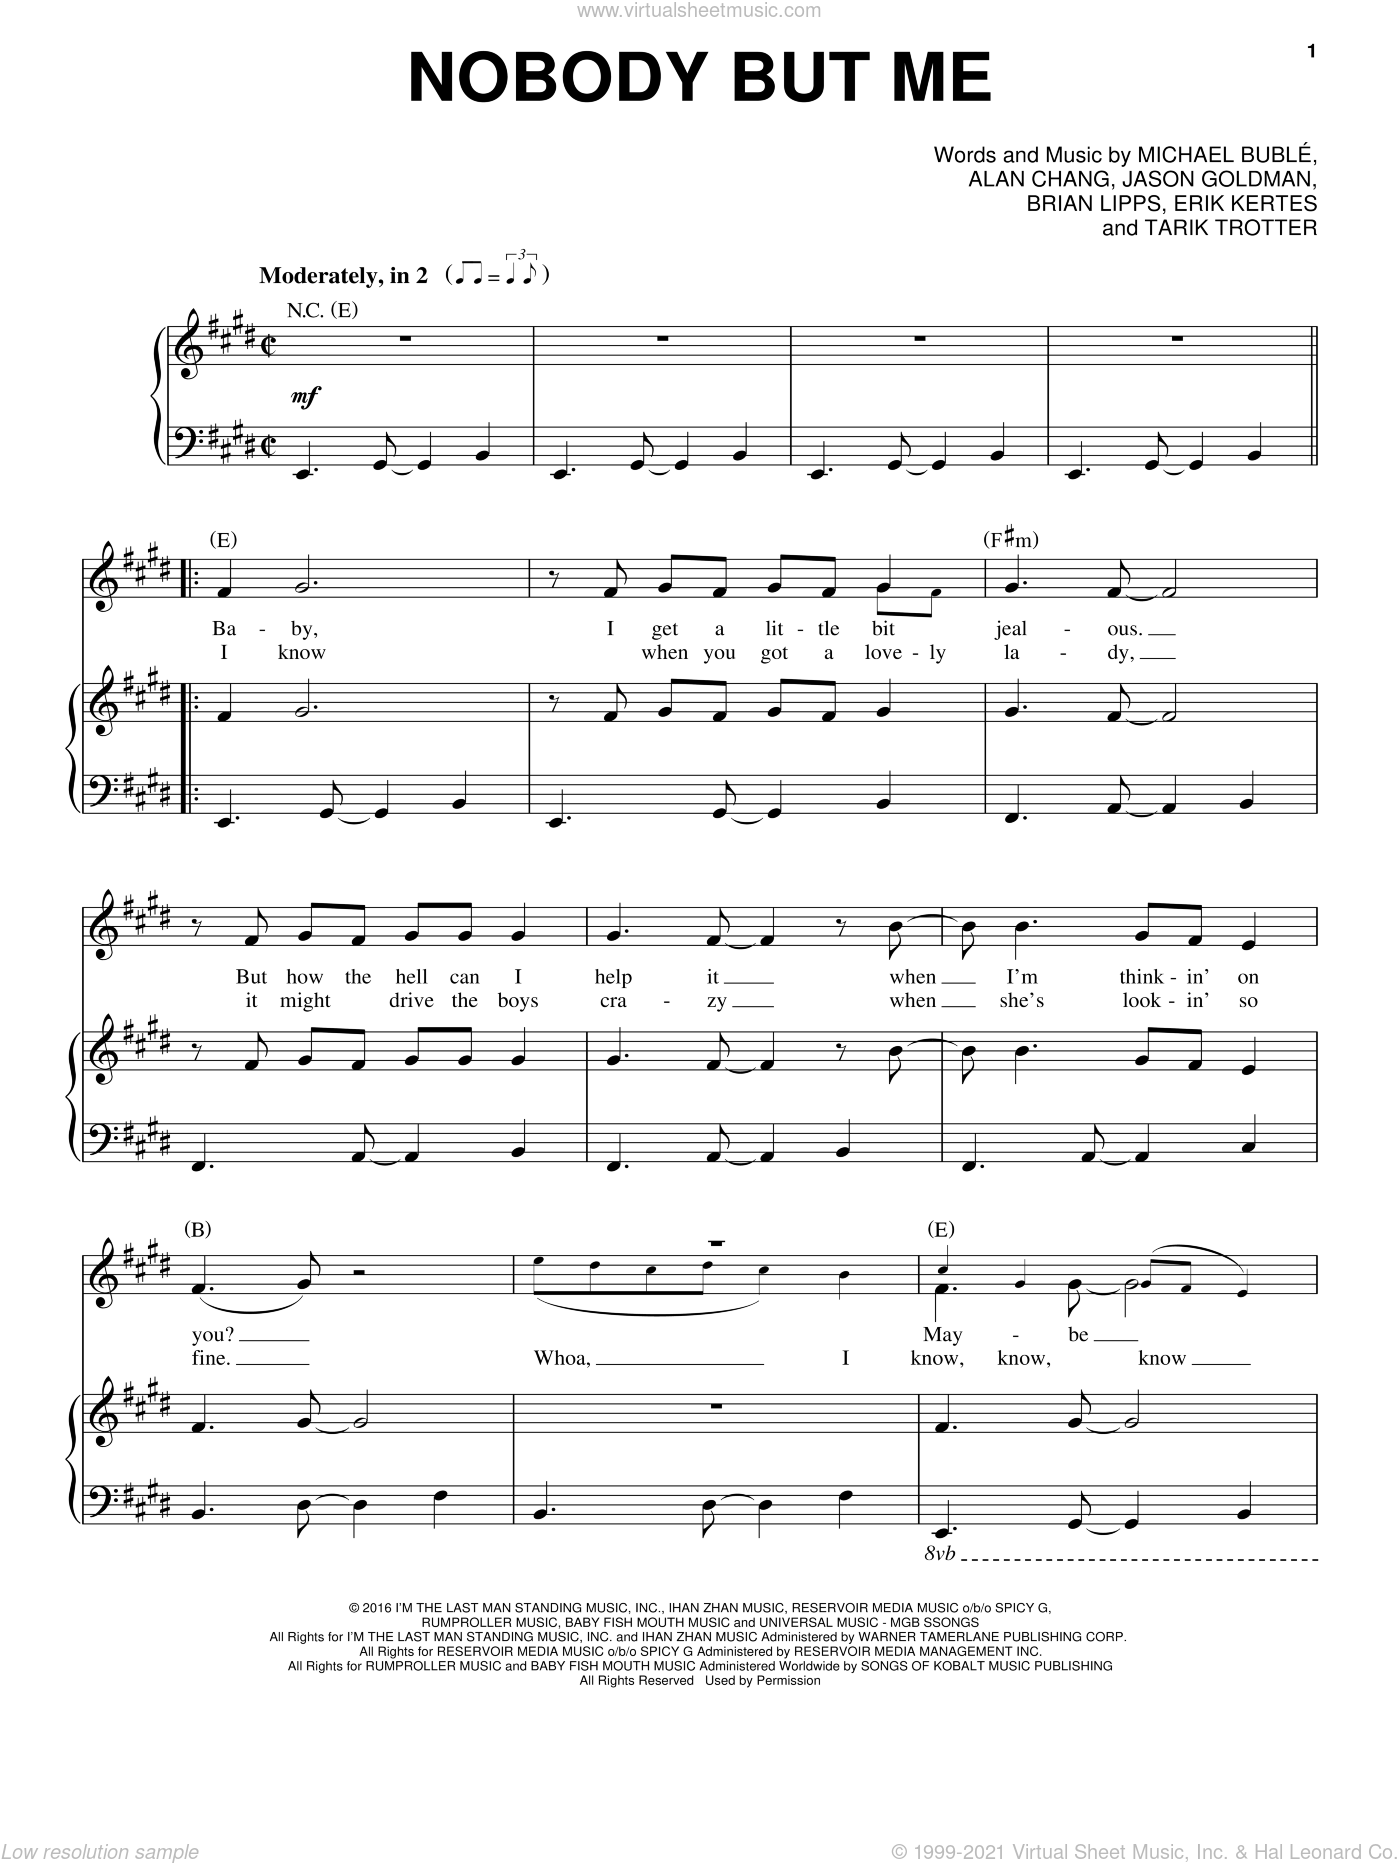 Nobody But Me sheet music for voice, piano or guitar by Michael Buble, Alan Chang, Bryan Lipps, Eric Kertes, Jason Goldman and Tarik Trotter, intermediate skill level